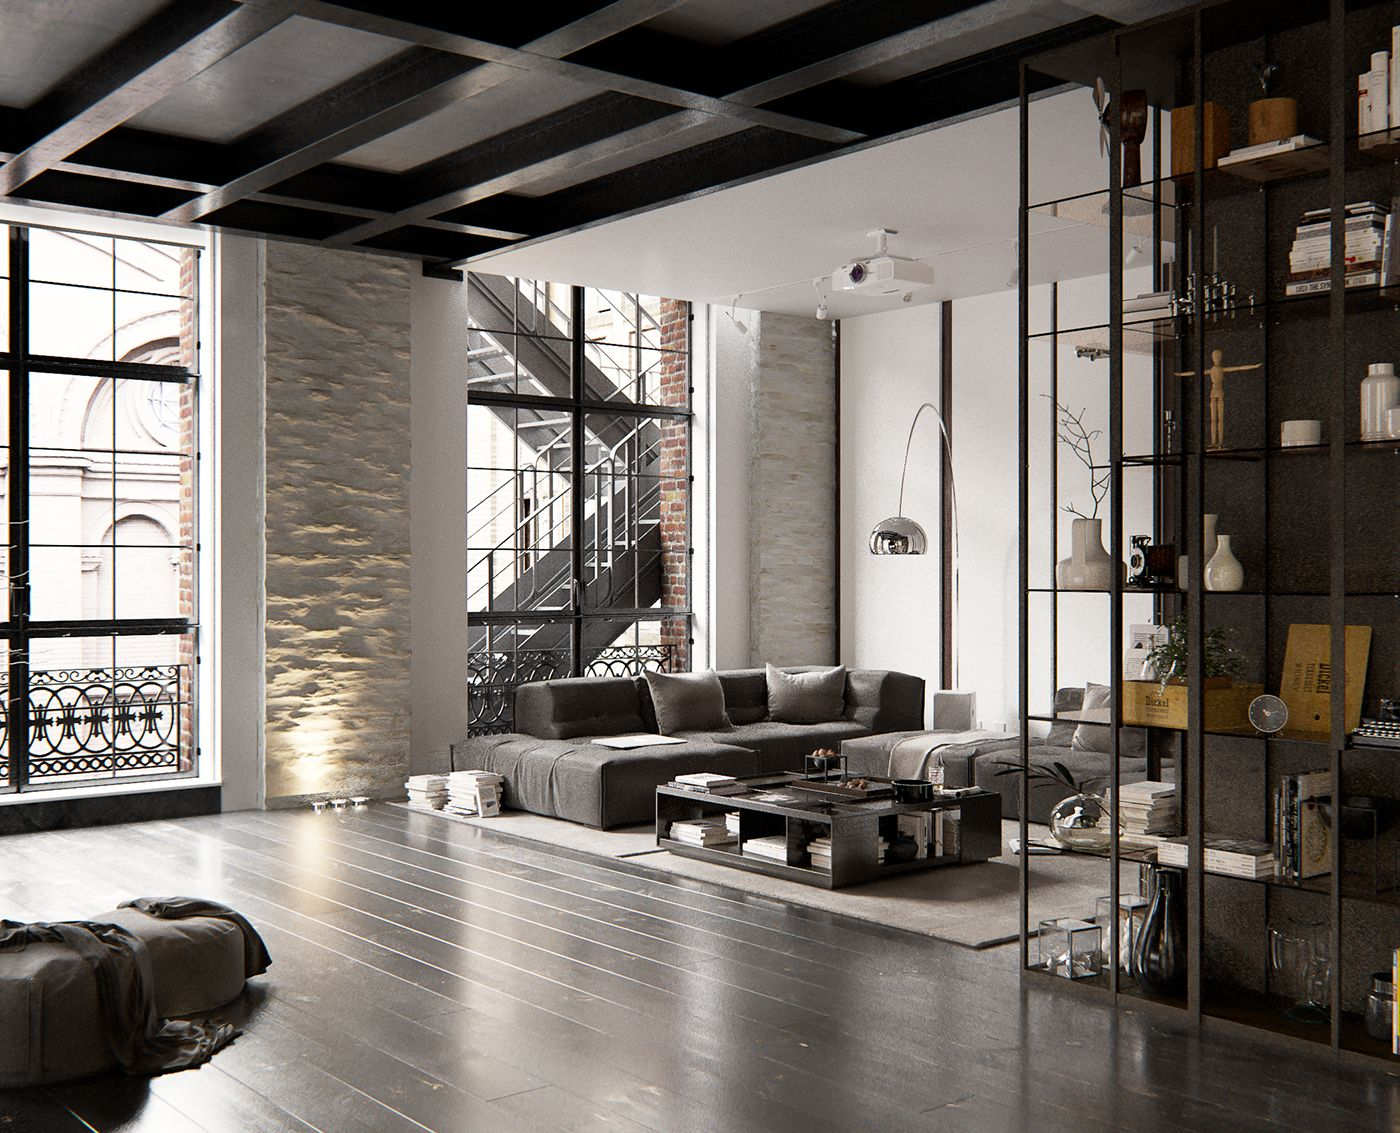 Charmant Un Loft Industriel à New York   PLANETE DECO A Homes World